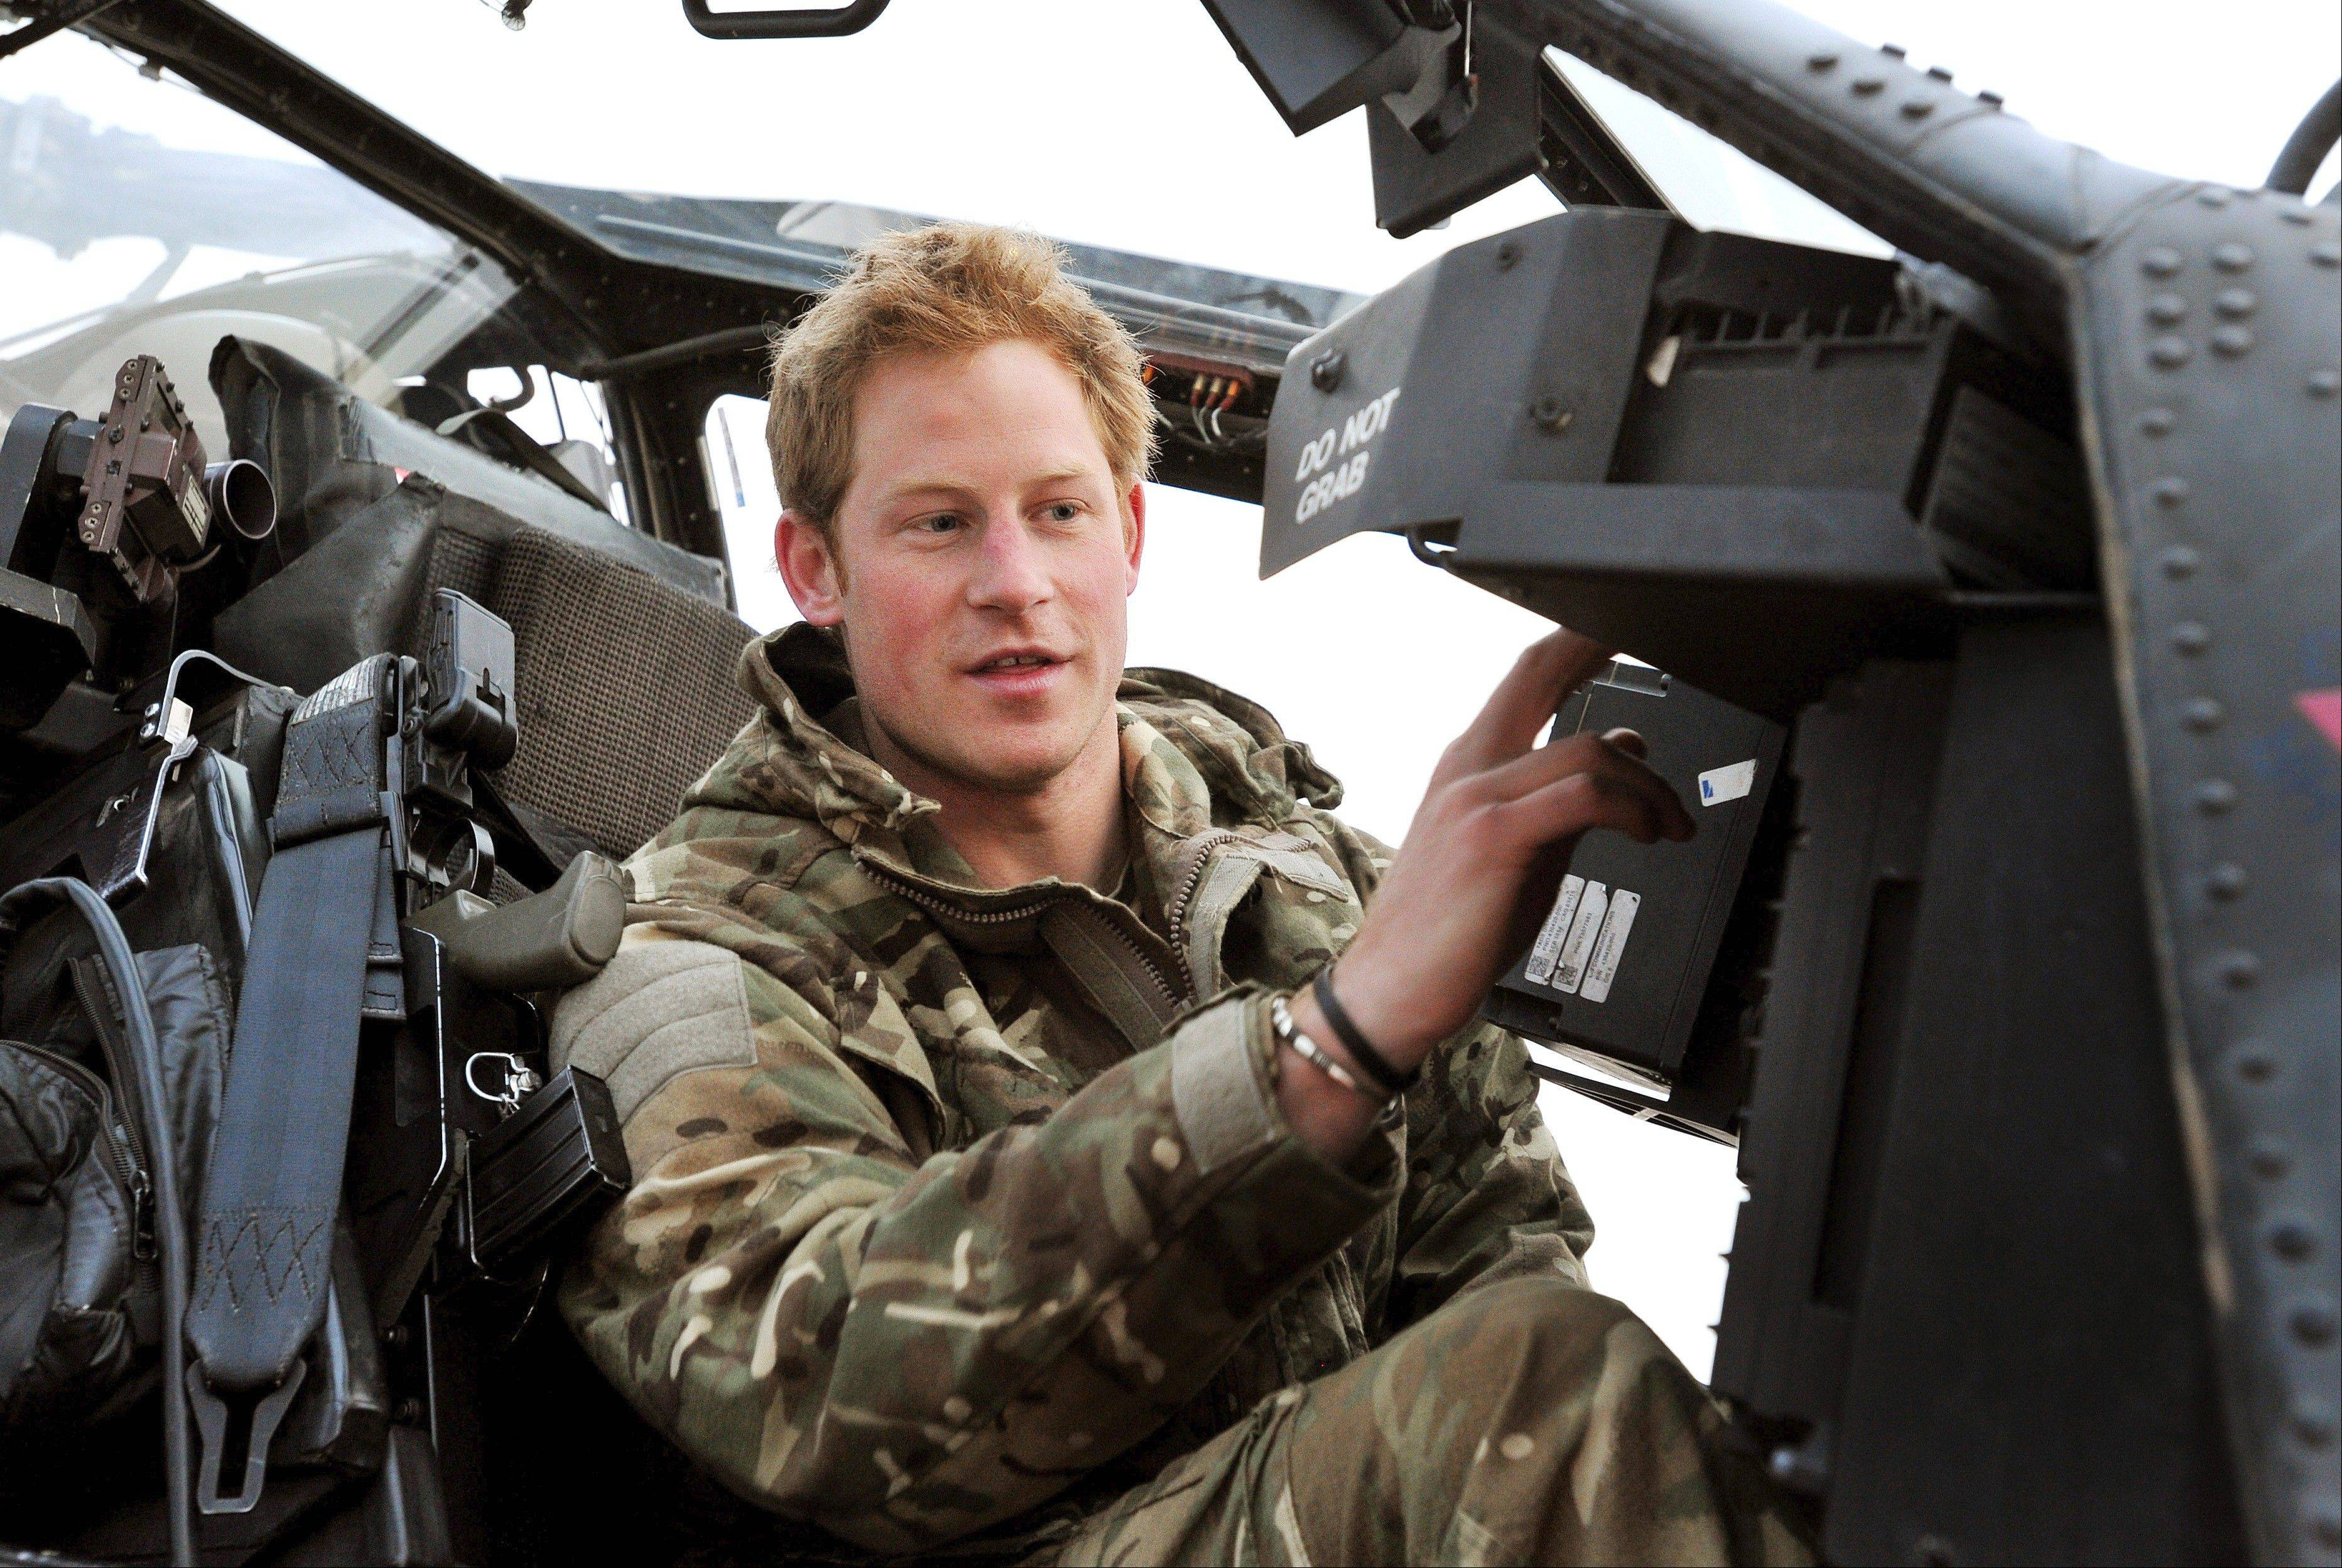 Britain's Prince Harry, or just plain Captain Wales as he is known in the British Army, is seen last month as he makes his early morning pre-flight checks on the flight-line, from Camp Bastion southern Afghanistan.